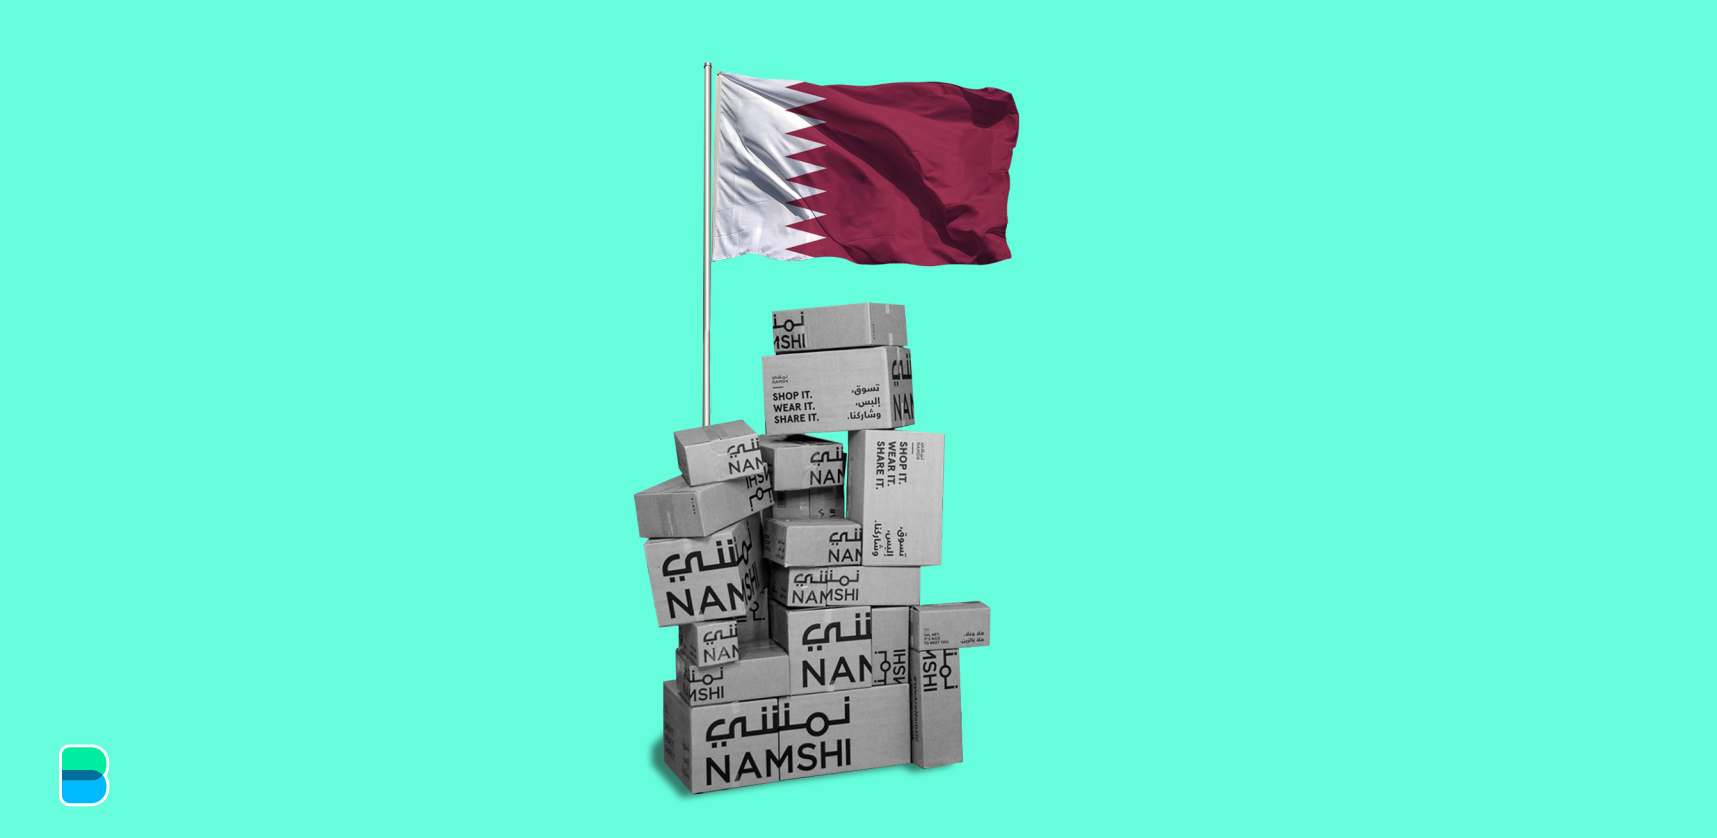 Namshi doesn't waste any time when it comes to Qatar